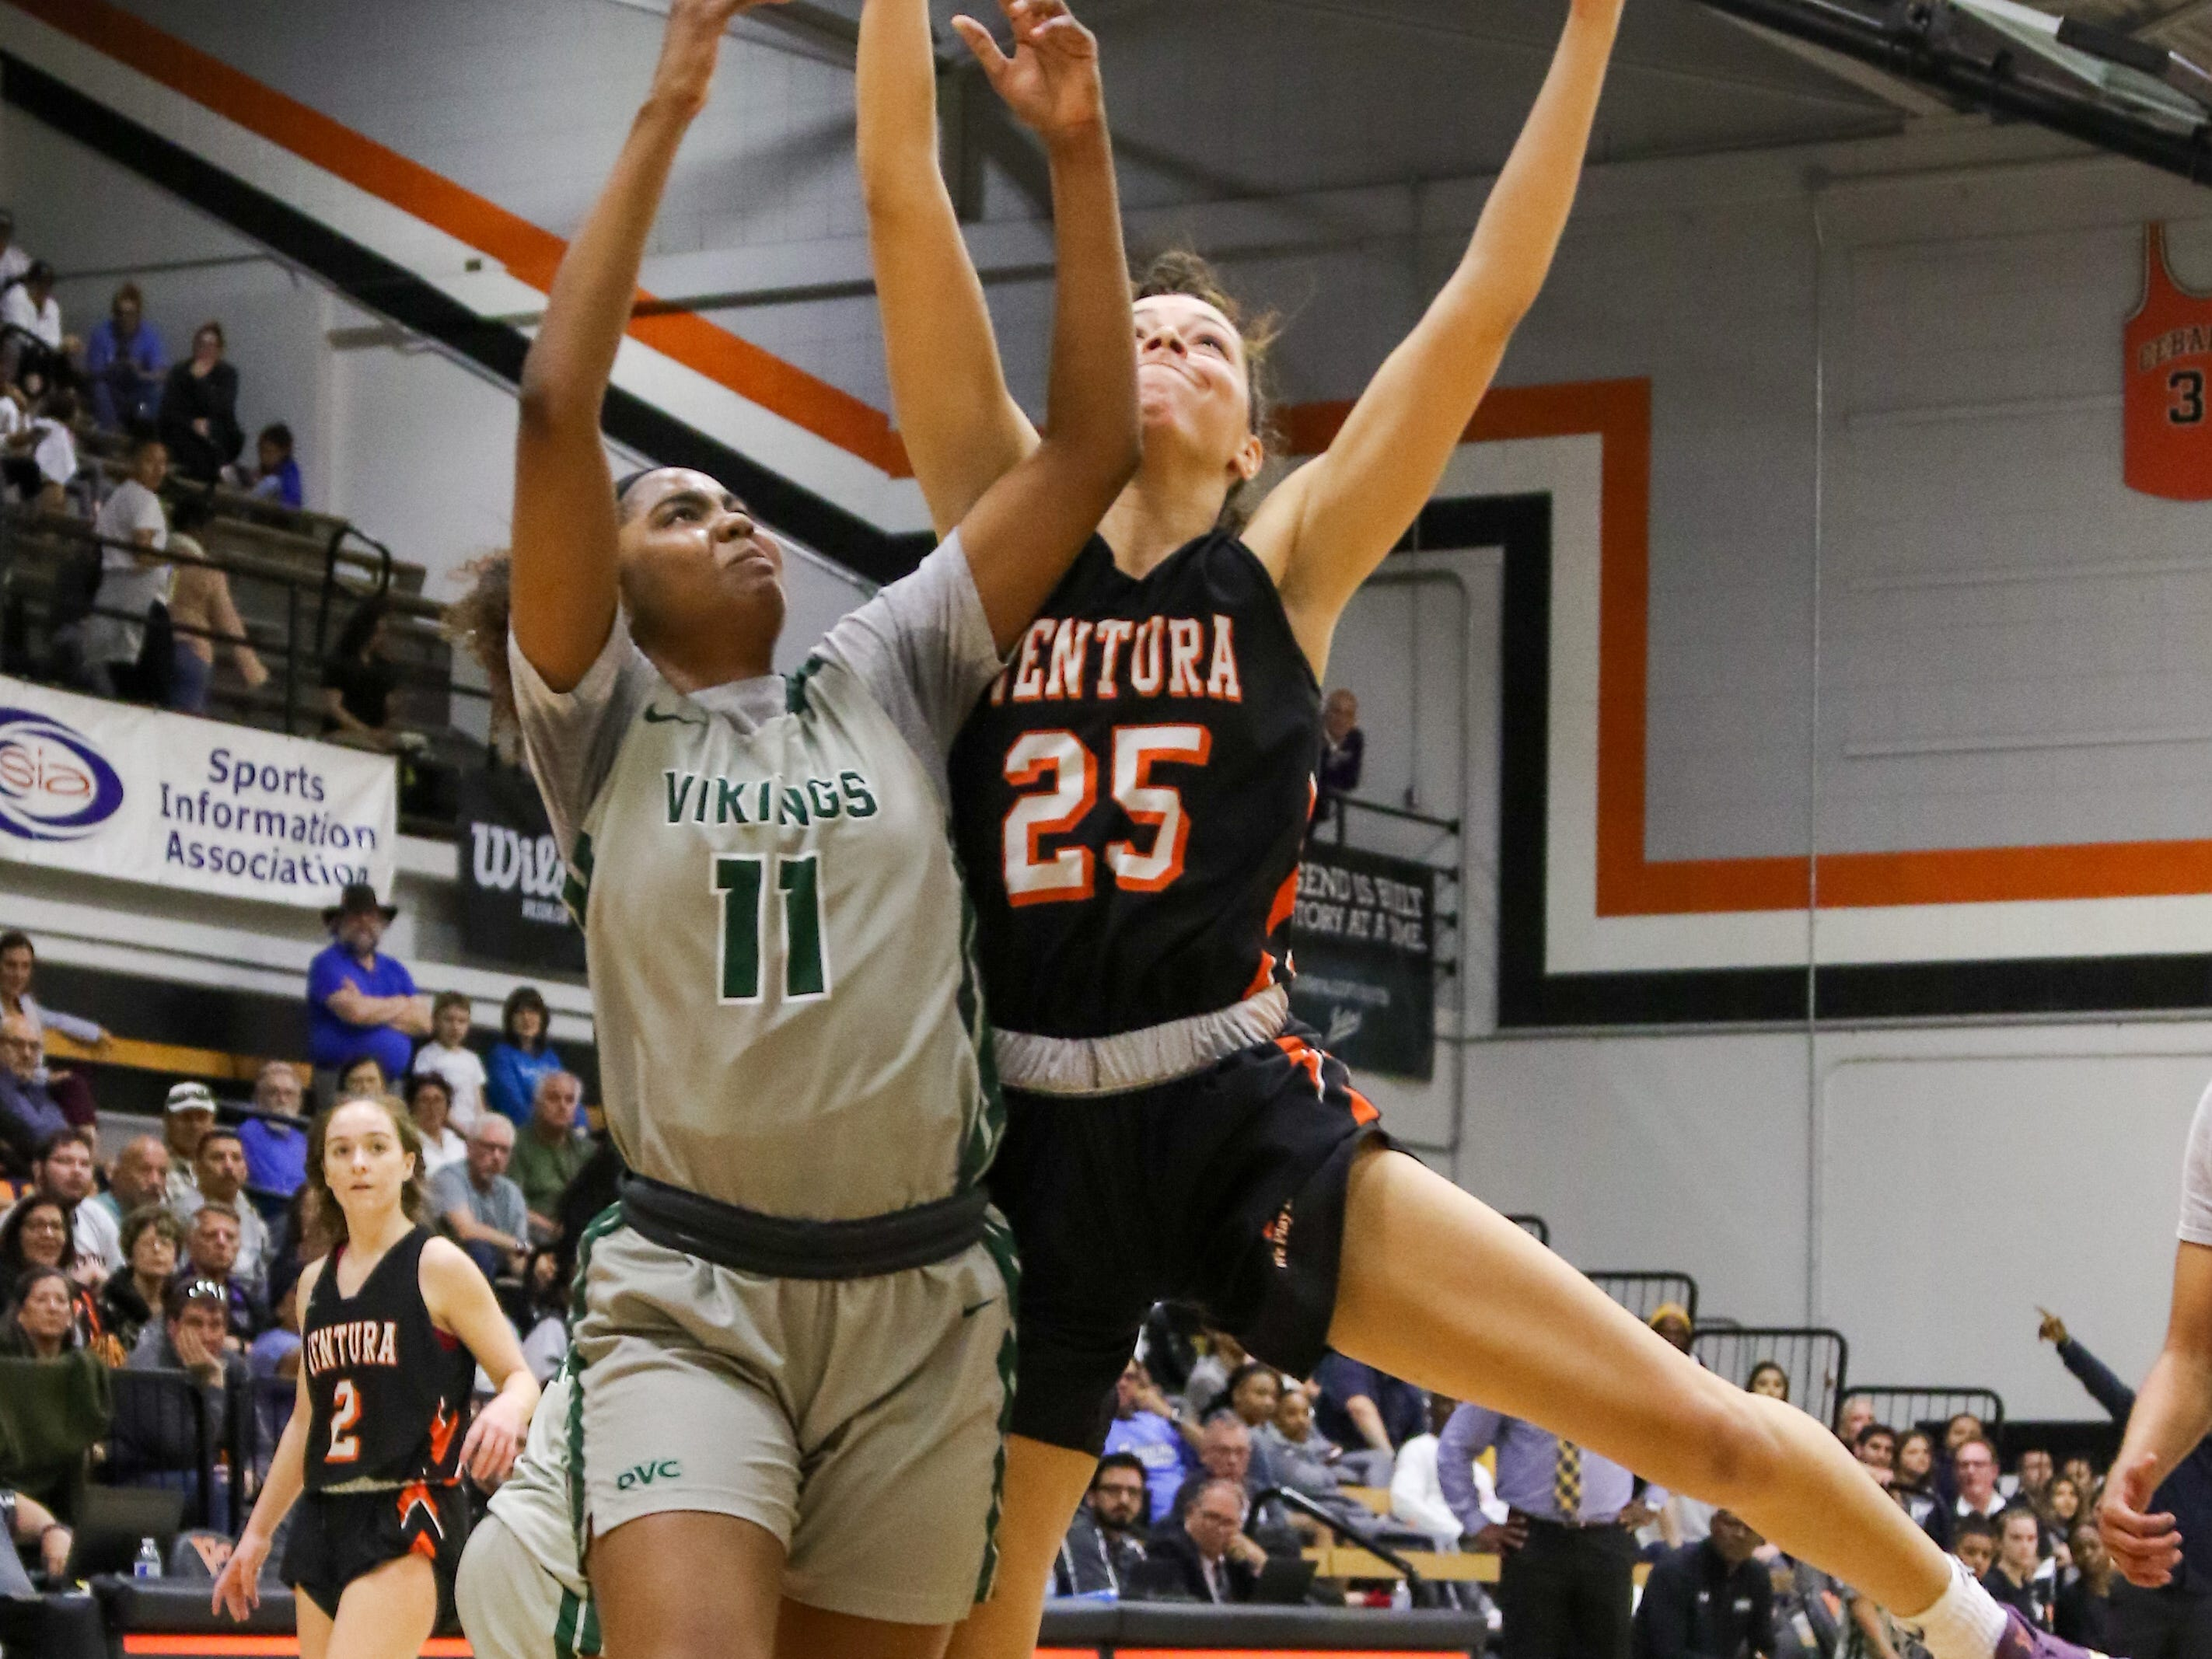 Ventura College freshman Robin Fallandy is fouled by Diablo Valley's Leilani Moncrease during the CCCAA state quarterfinals on Friday night in Ventura. Diablo Valley won, 59-57.